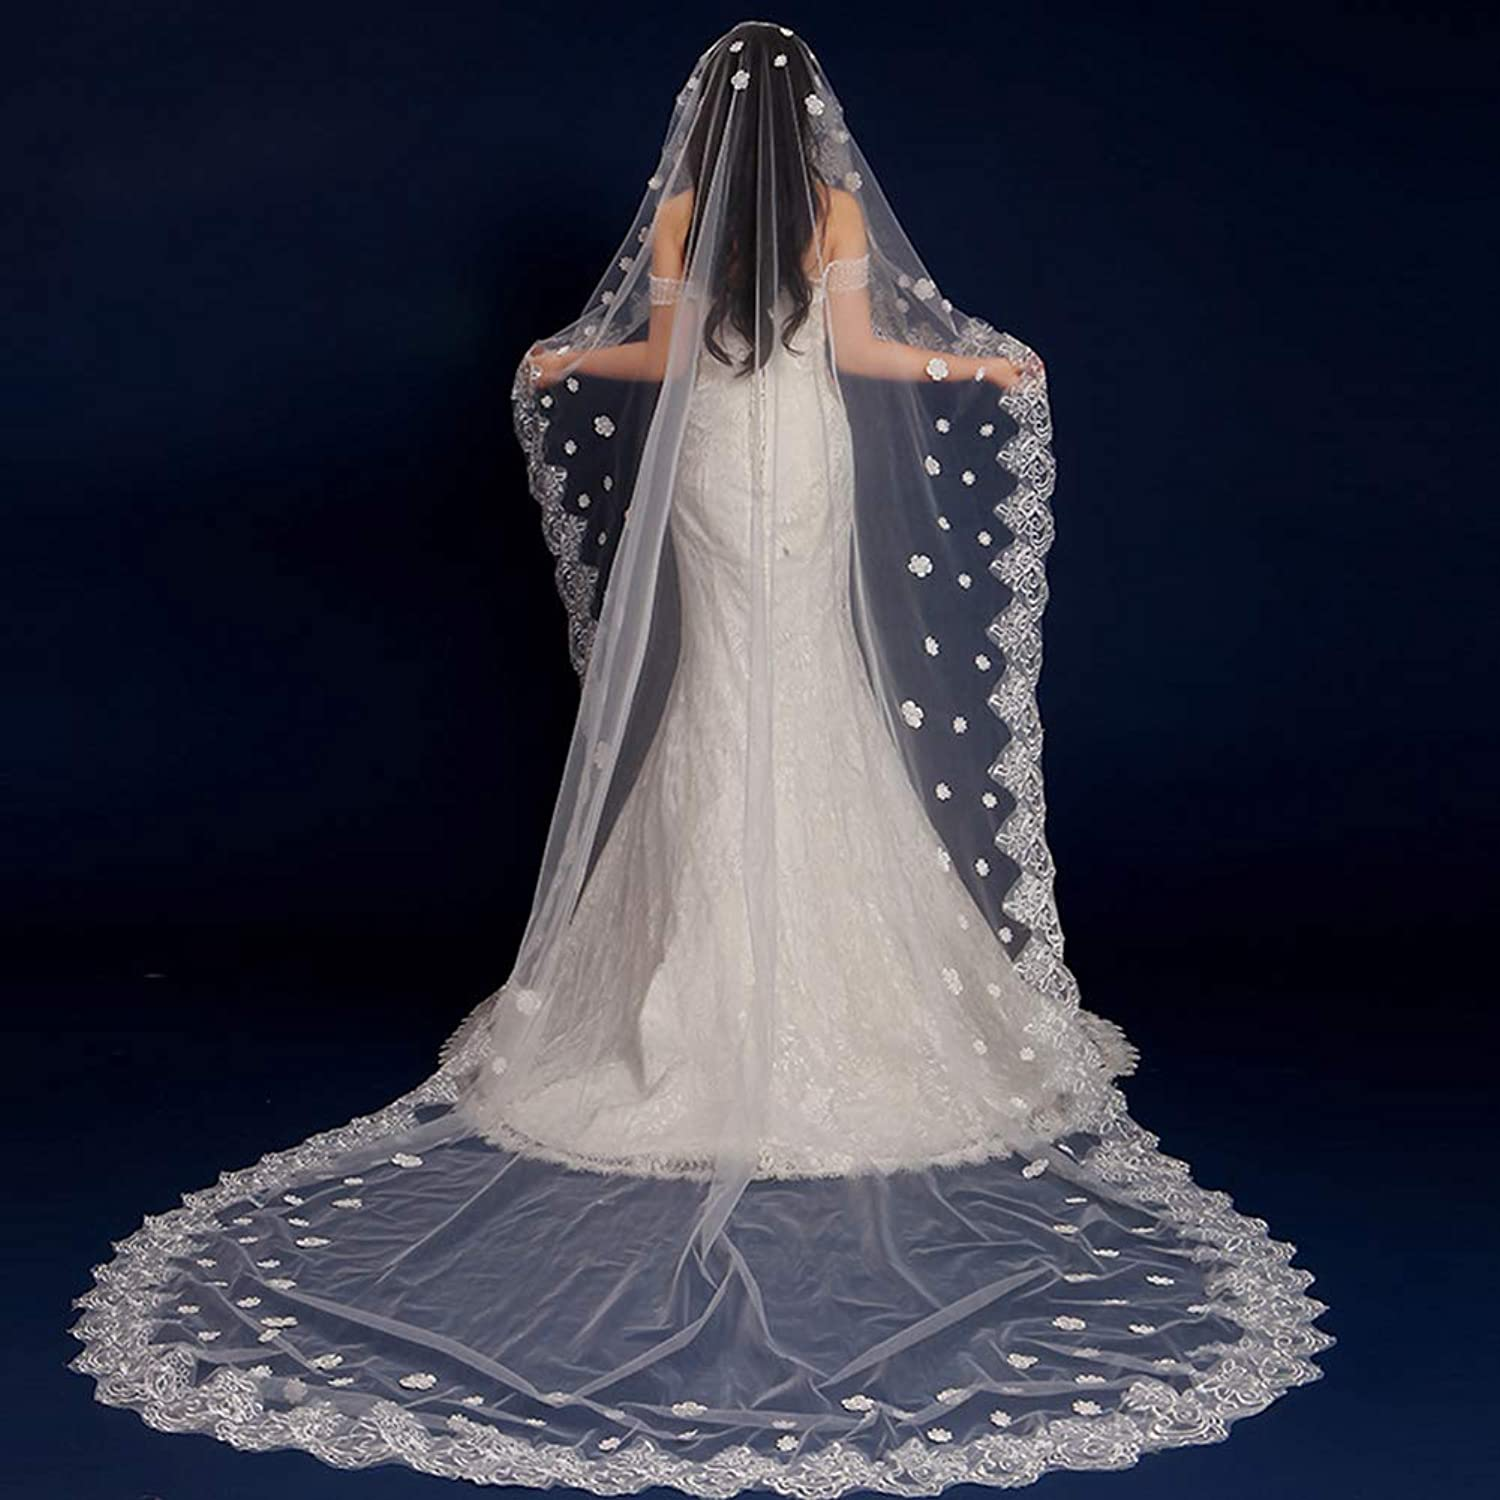 Bridal Veil  1 Tier Lace ThreeDimensional Flowers Cathedral Wedding Veil Long Tailed Luxury Wedding Veil for Bride to Be Night Party Dress Accessories, White(300cm Length),C,300CM